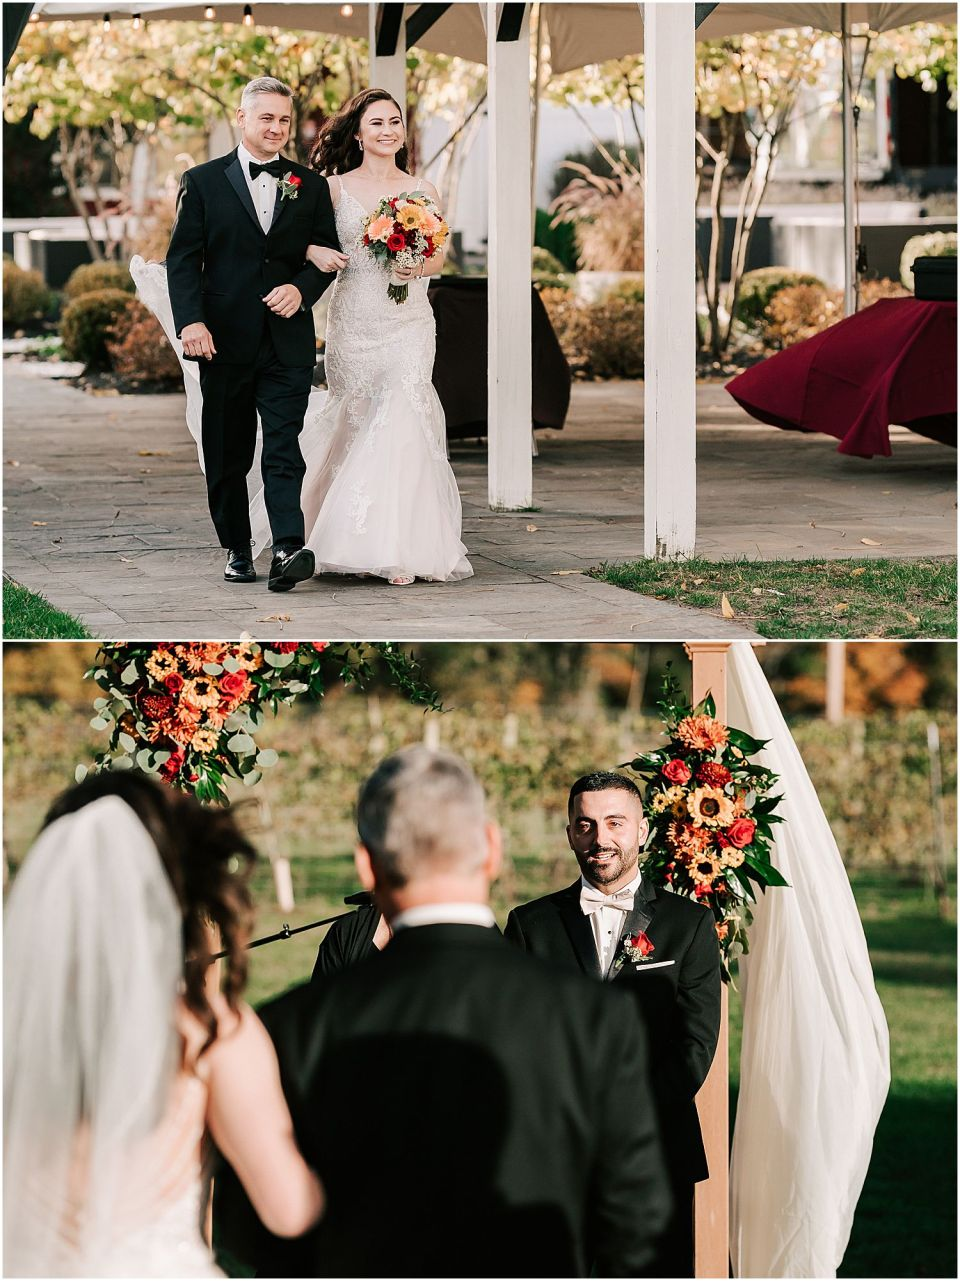 The groom seeing his bride for the first time at this Valenzano Winery Wedding